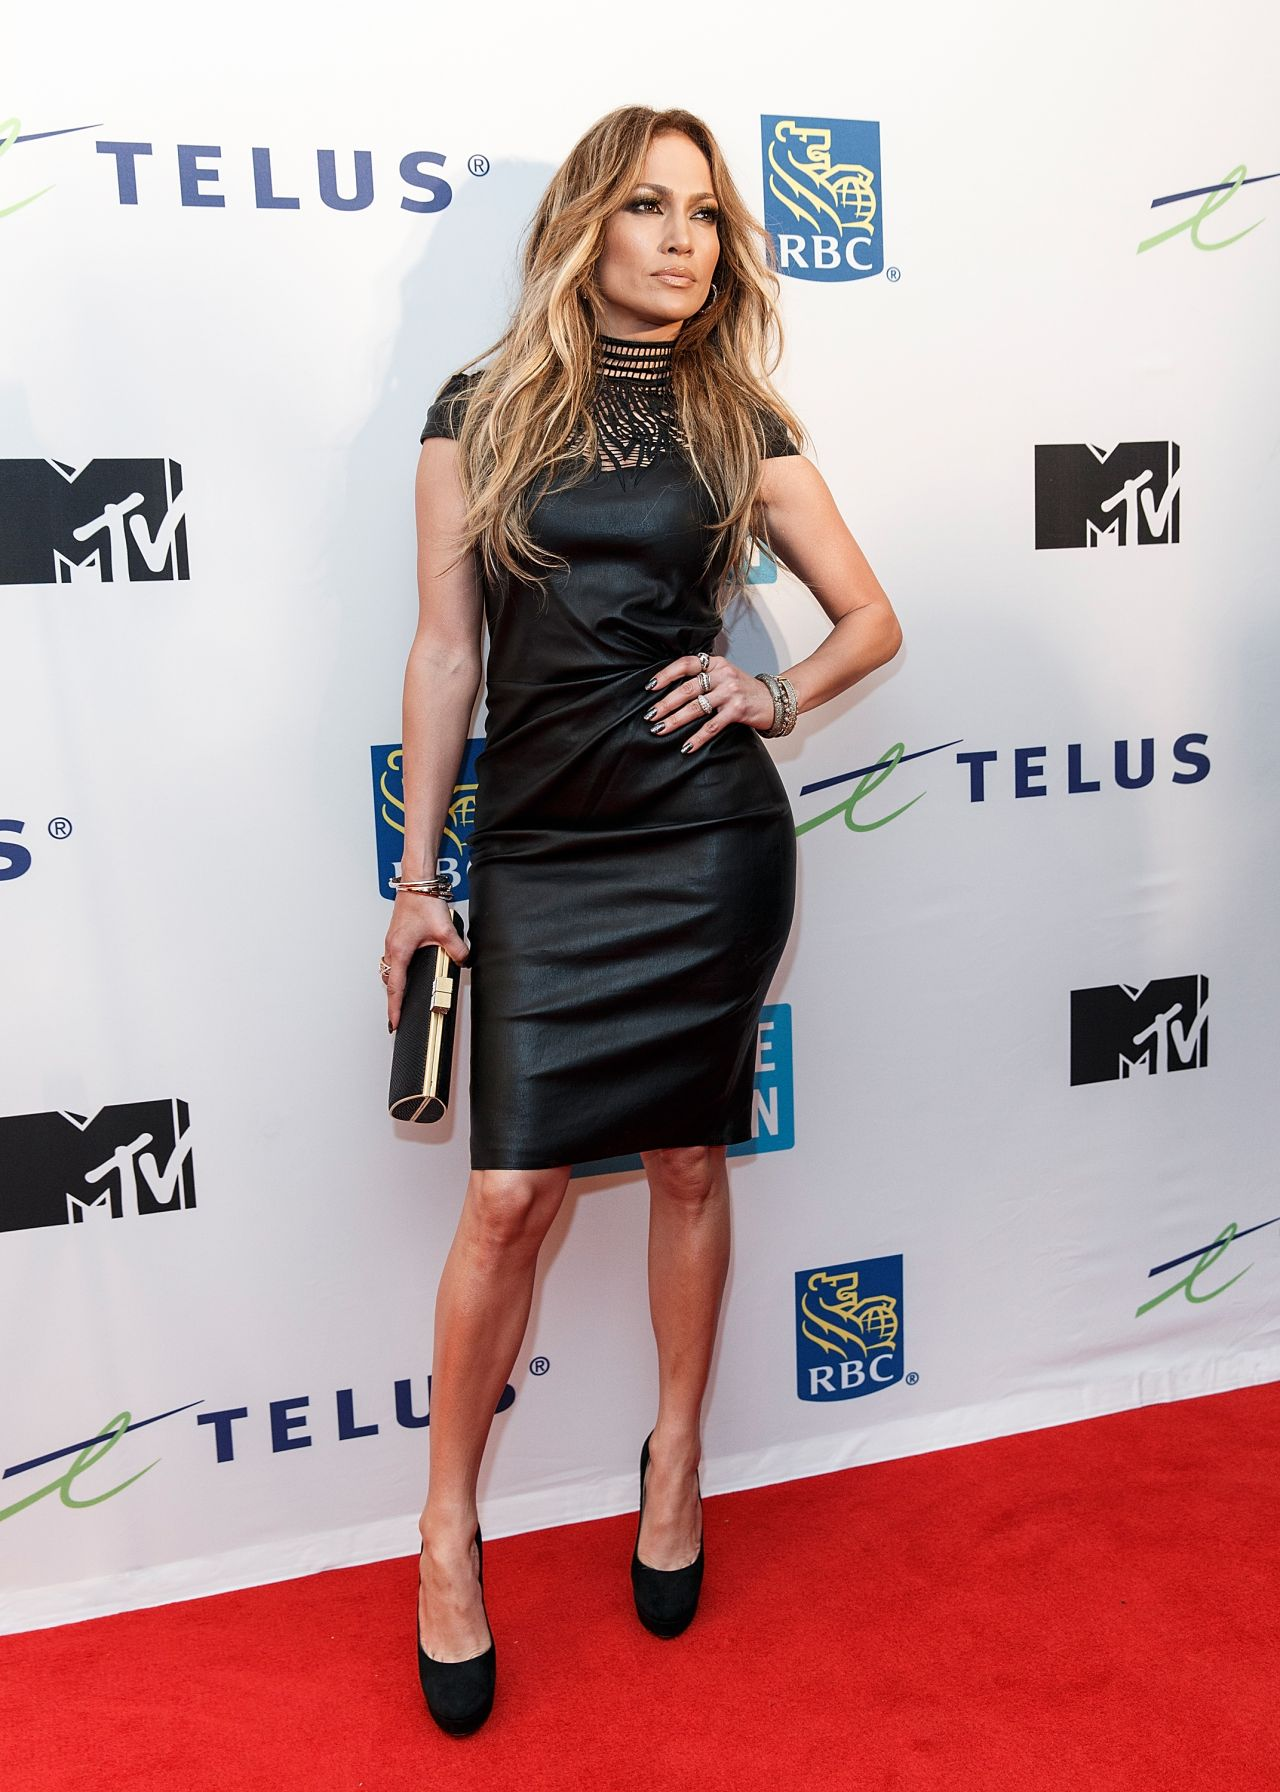 Jennifer Lopez In Leather Dress At We Day Event In Vancouver